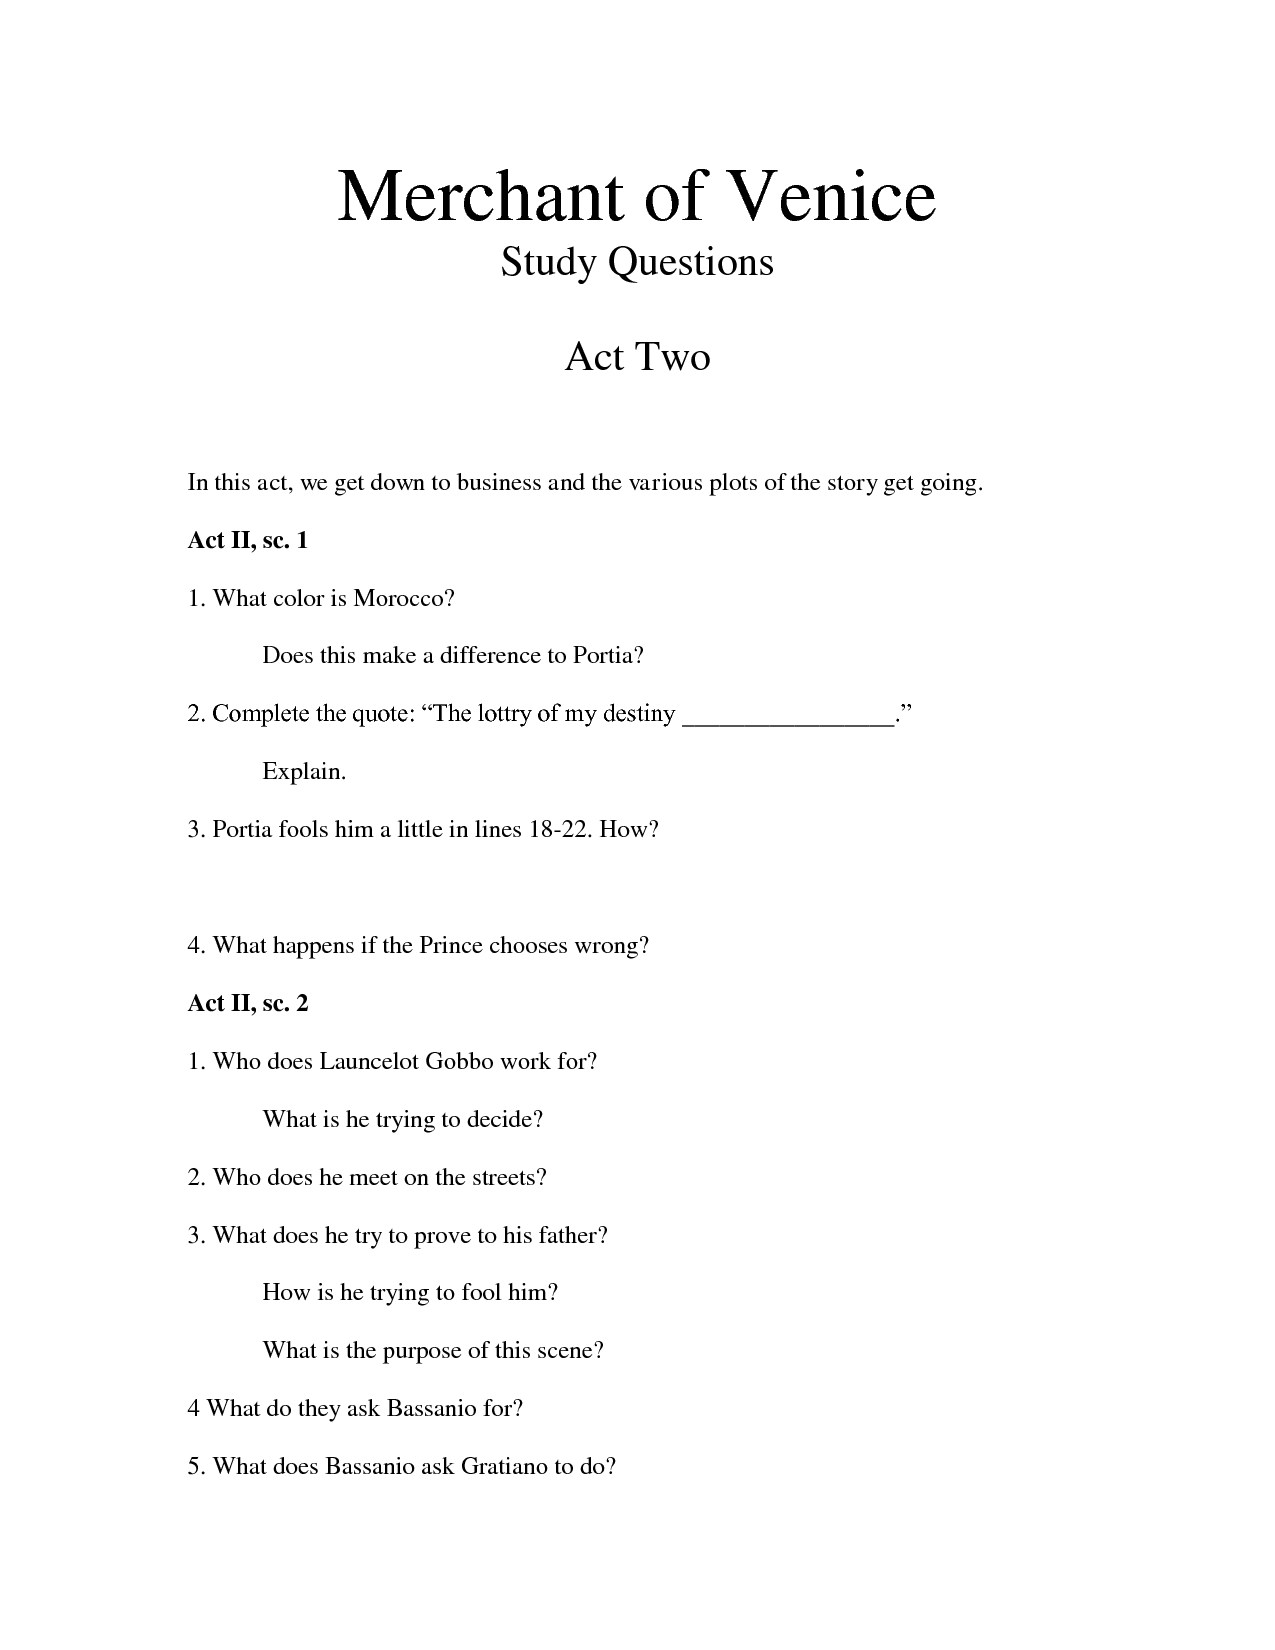 the merchant of venice 4 essay Critical essay - merchant of venice the merchant of venice essay good man, shakespeare has also effected the importance of the themes, one in particular.